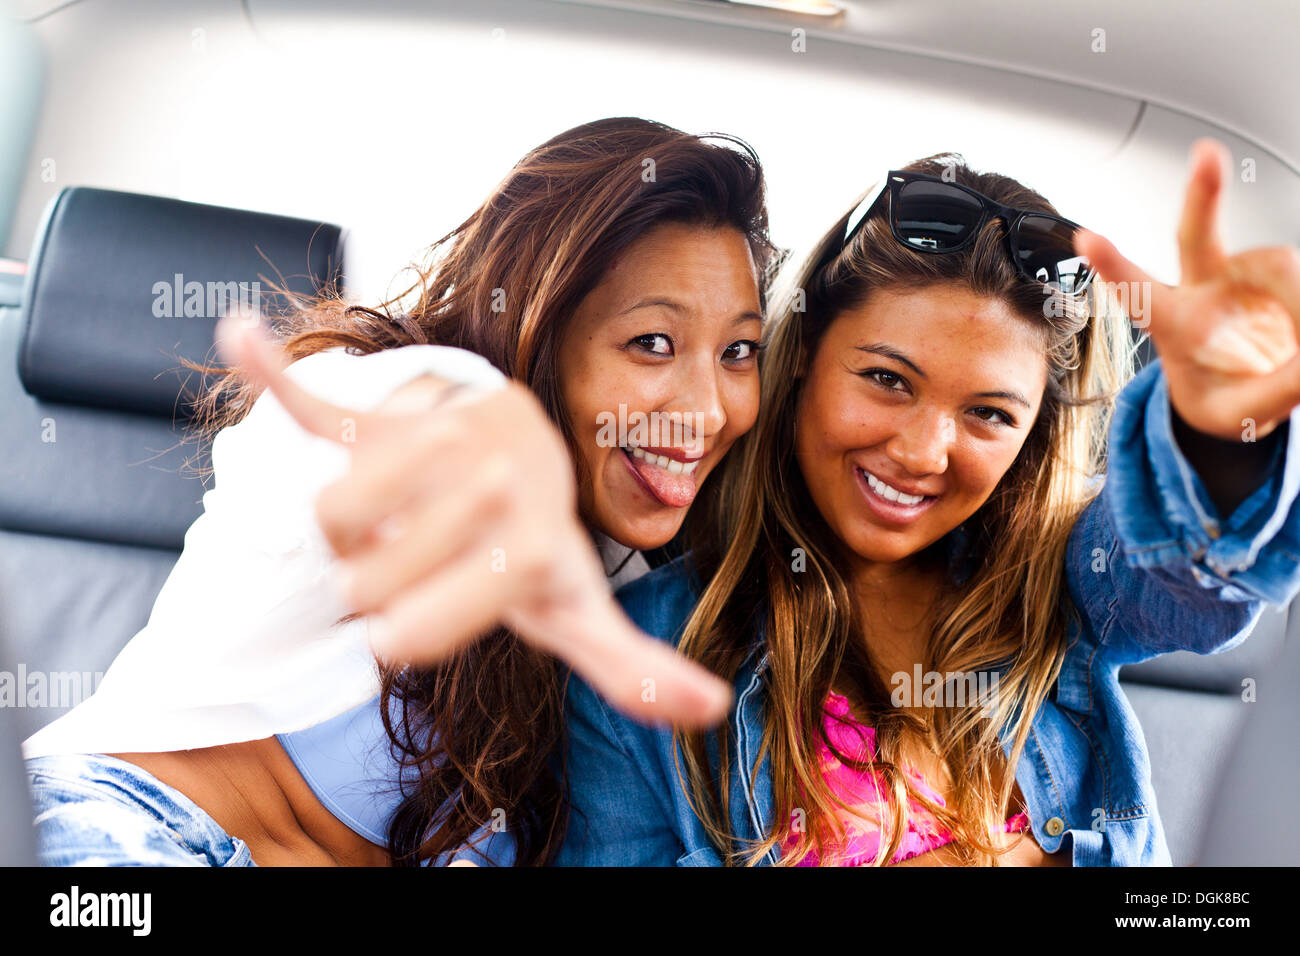 Two female friends making hand gestures in car - Stock Image